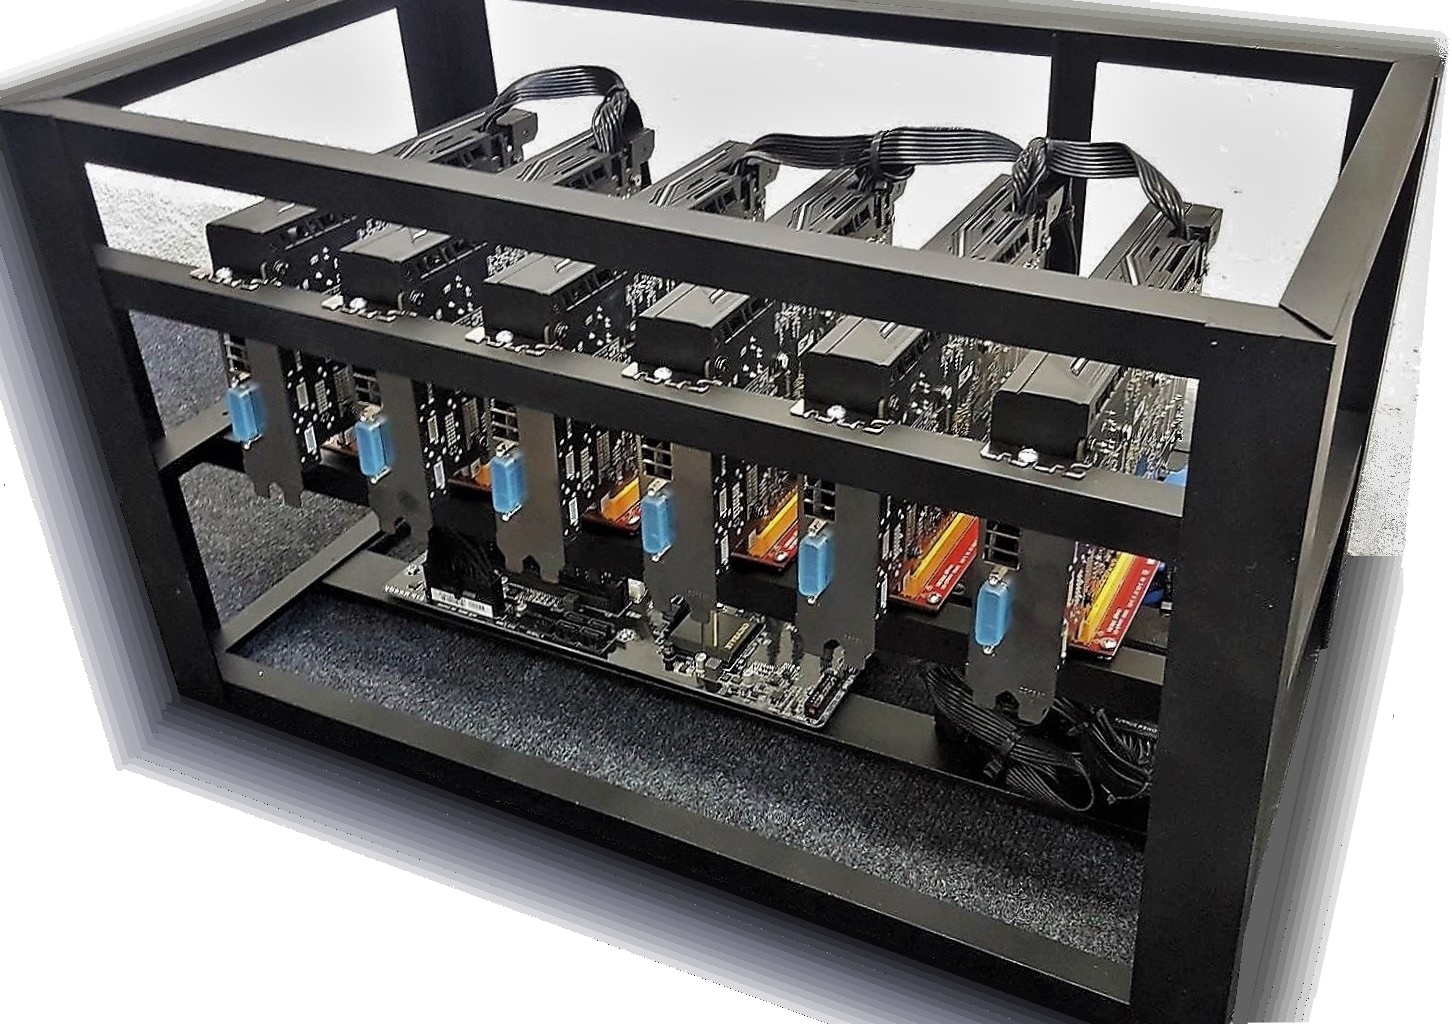 GPU Mining Rig for Sale - Ethereum, Ethereum-Classic, Zcash, Monero - Manufacturing from 2015